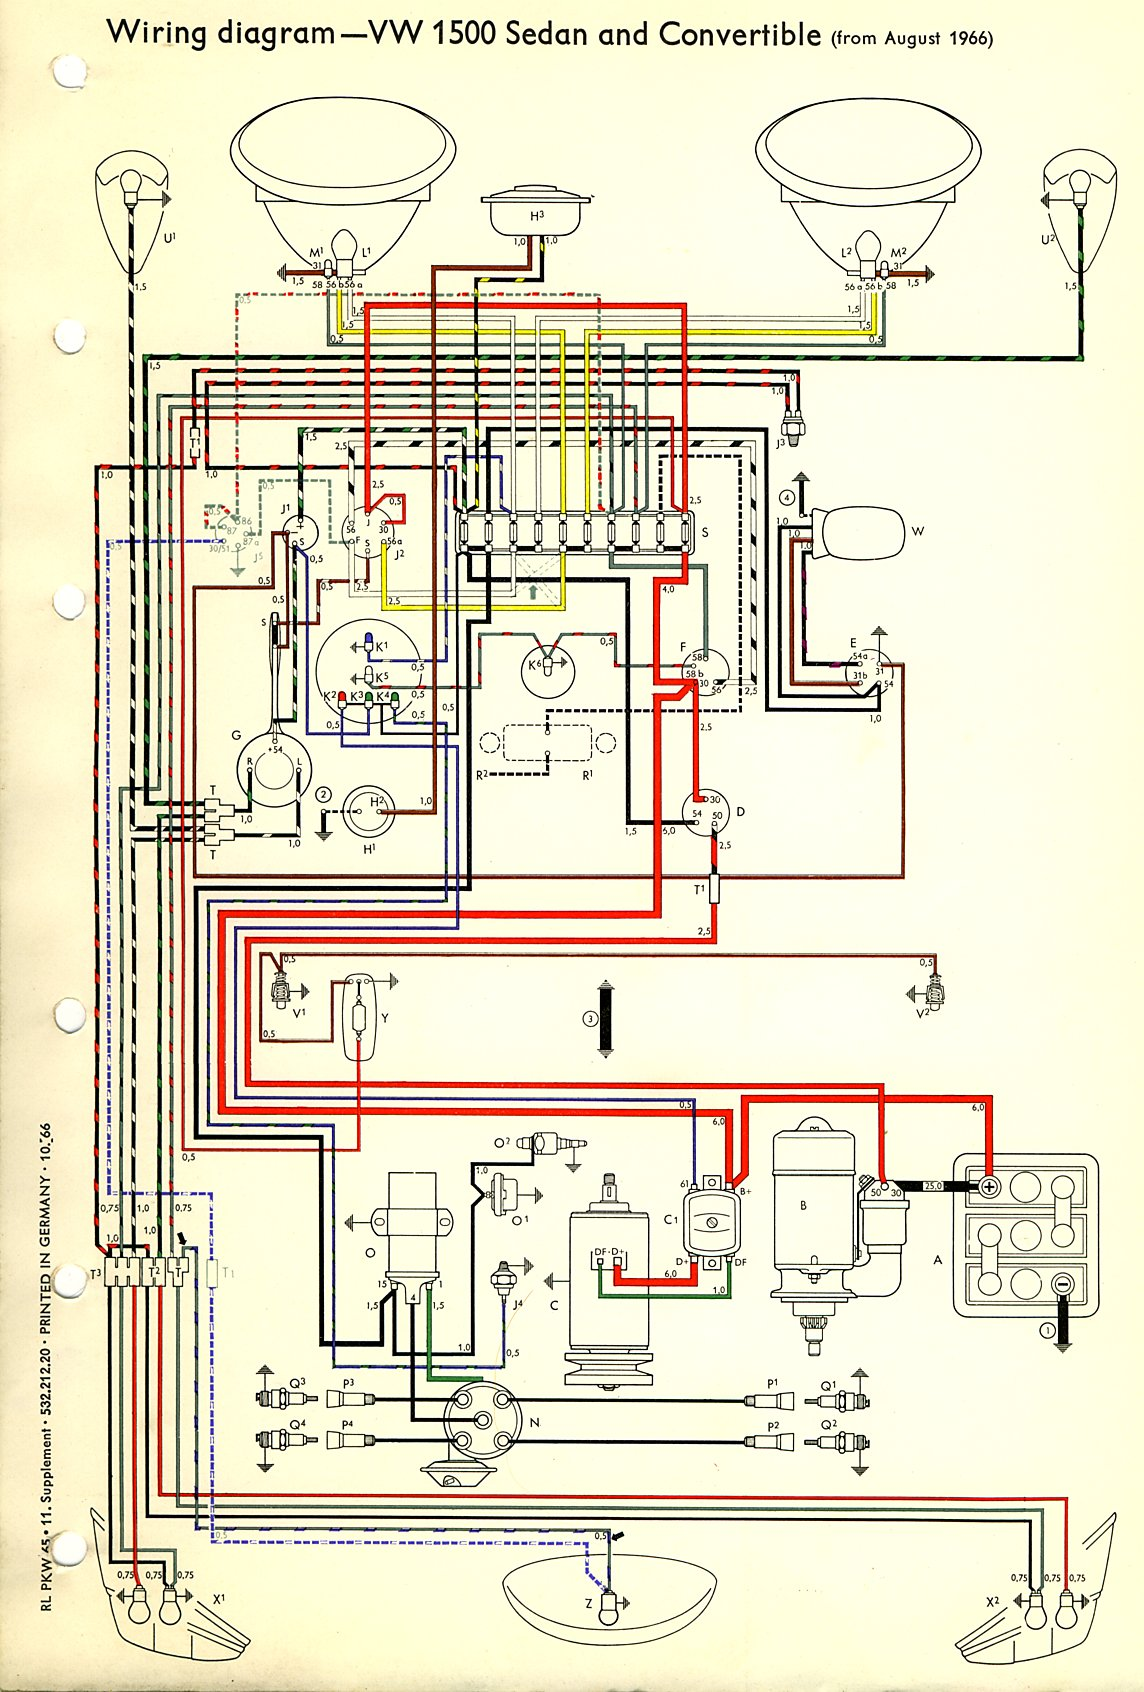 bug_67 1967 beetle wiring diagram thegoldenbug com wiring harness for 1967 vw beetle at gsmx.co